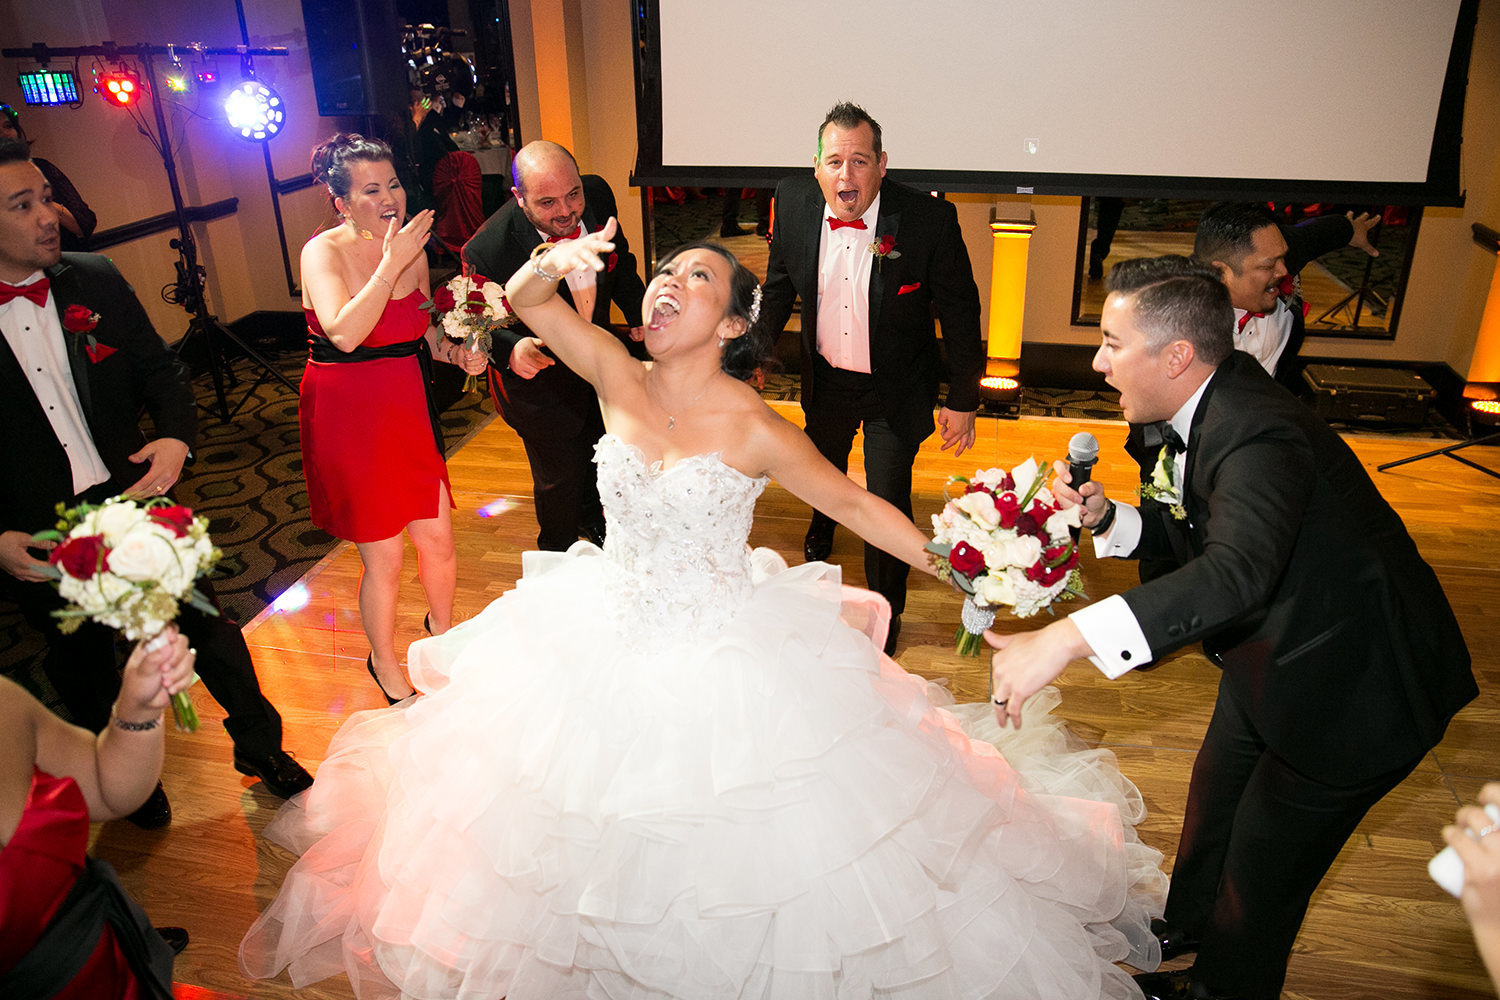 Hilarious moment during a choreographed flash mob wedding dance